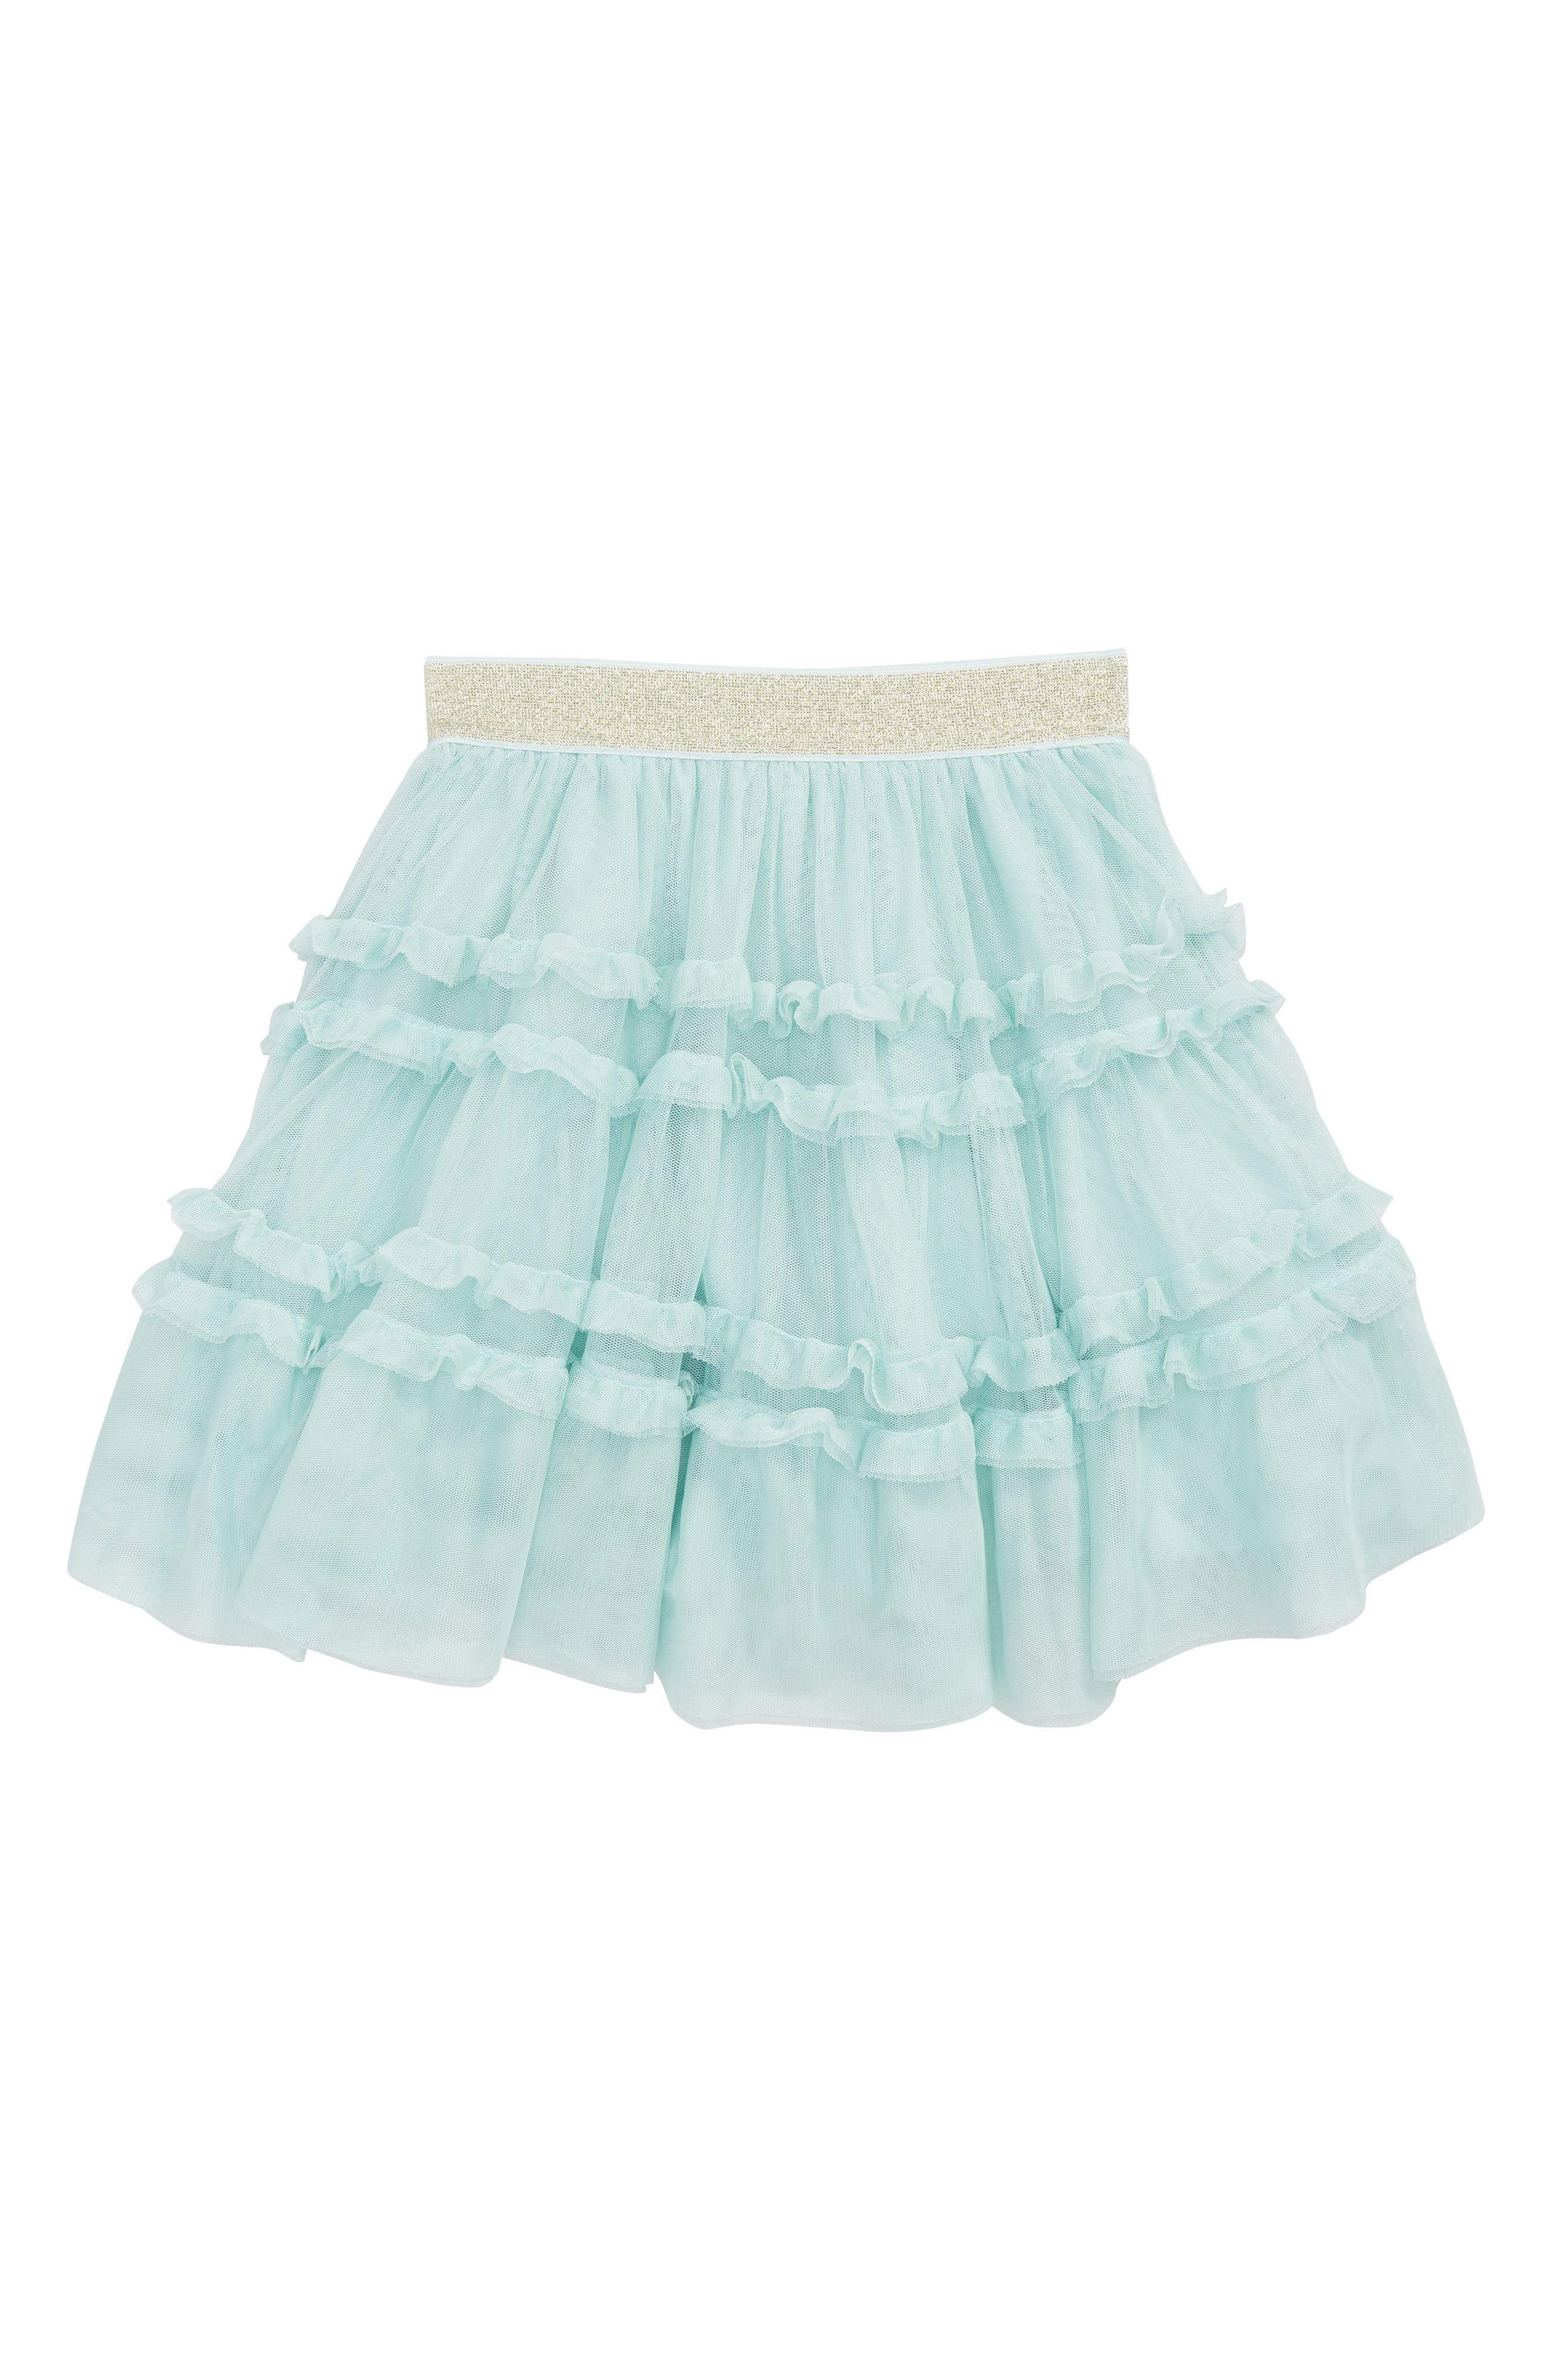 Ruffle Tulle Skirt,                         Main,                         color,